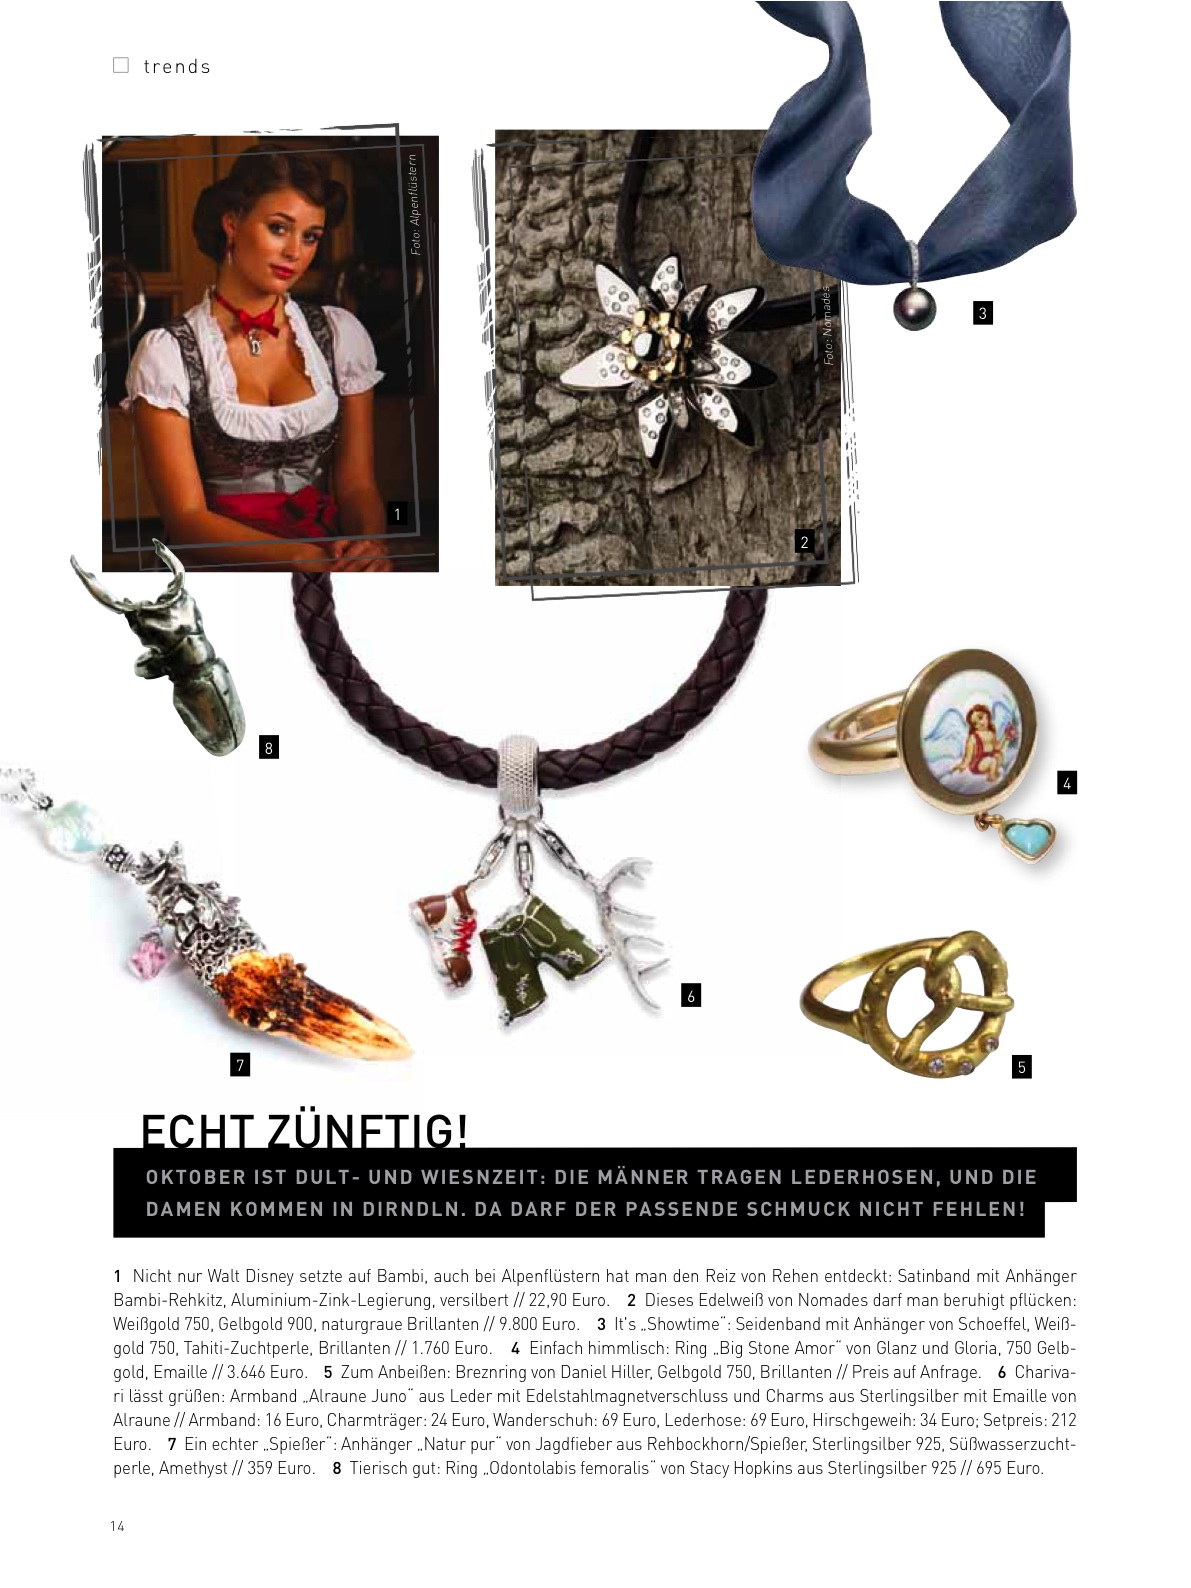 Schmuck Magazin March 2012